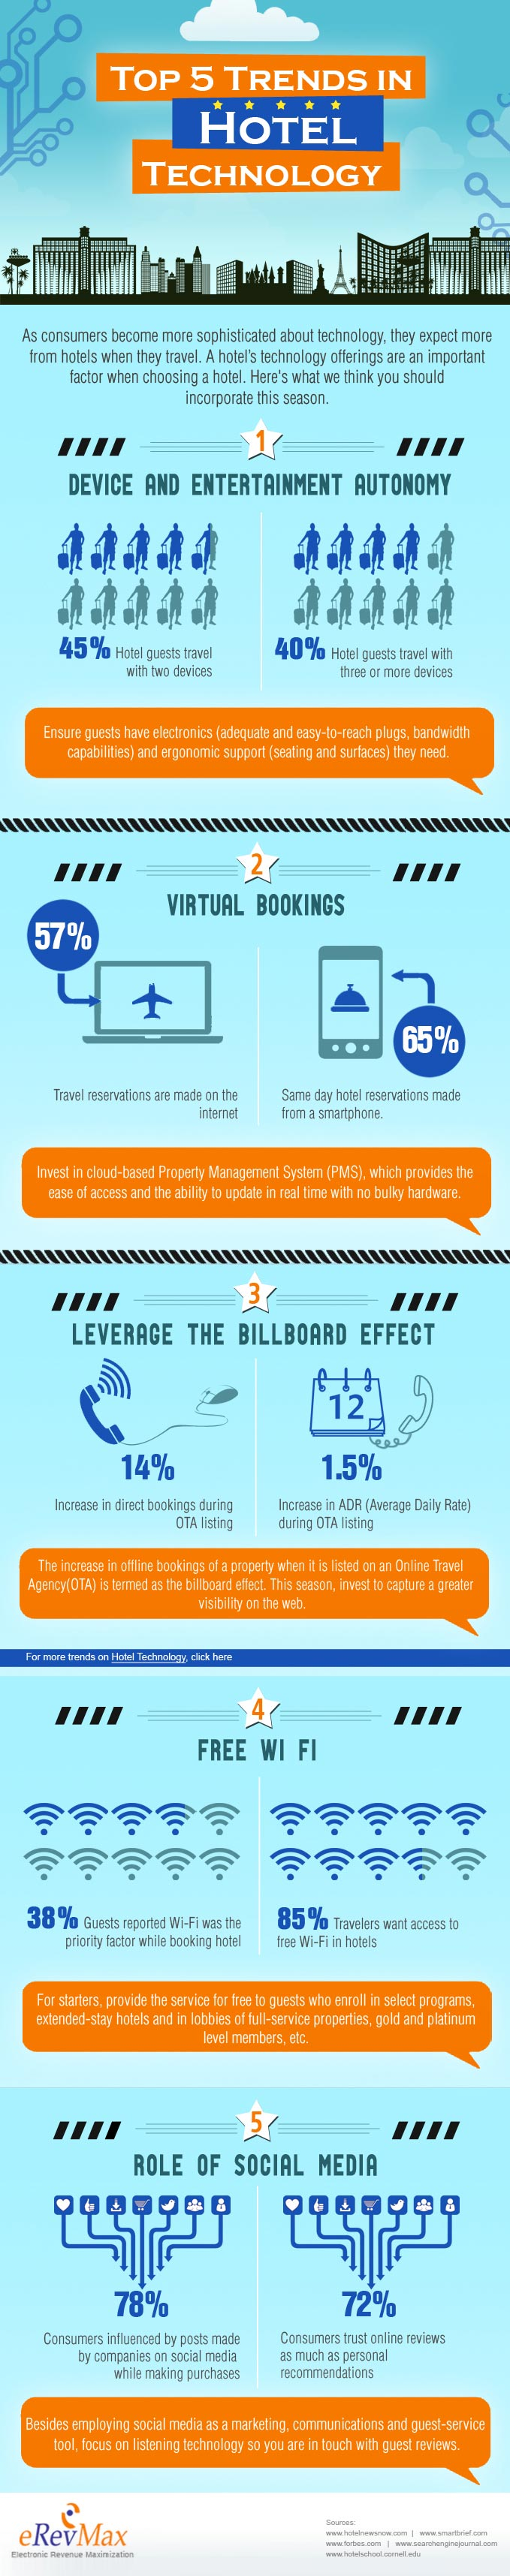 Top Five Hotel Technology Trends Infographic With Images Hotel Marketing Technology Trends